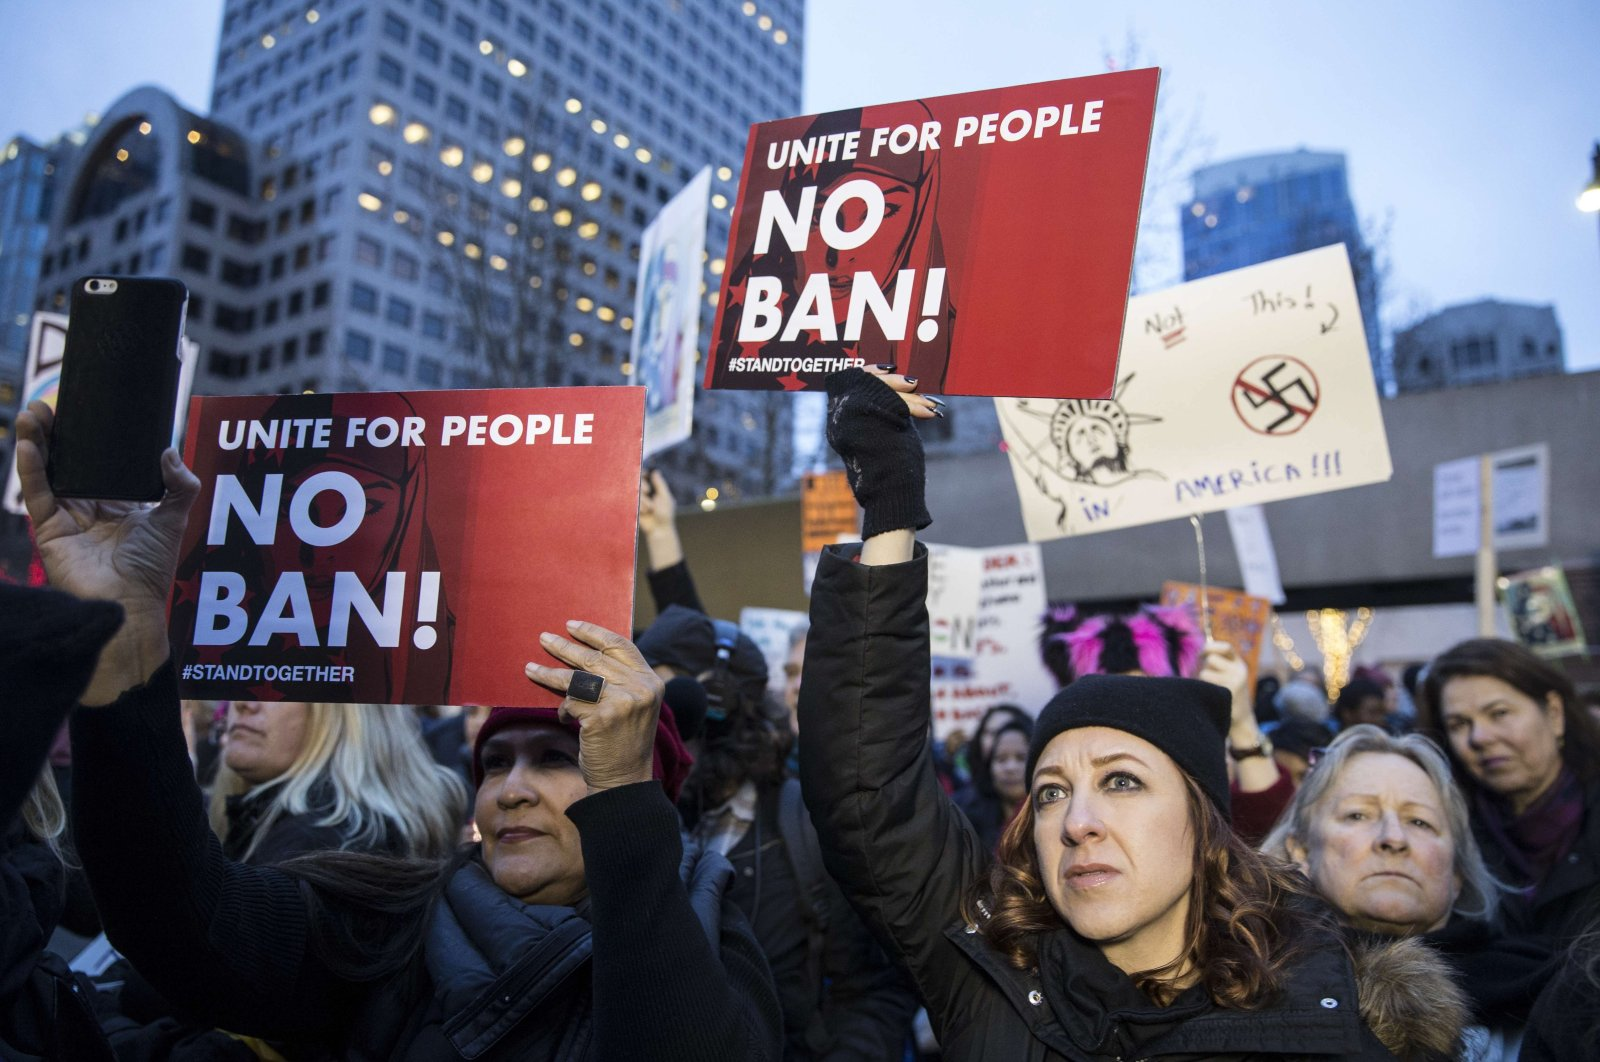 Protestors hold up signs while taking part in a demonstration against former President Donald Trump's executive order banning Muslims from certain countries, Seattle, Washington, U.S., Jan. 29, 2017. (Stephen Brashear/Getty Images via AFP)